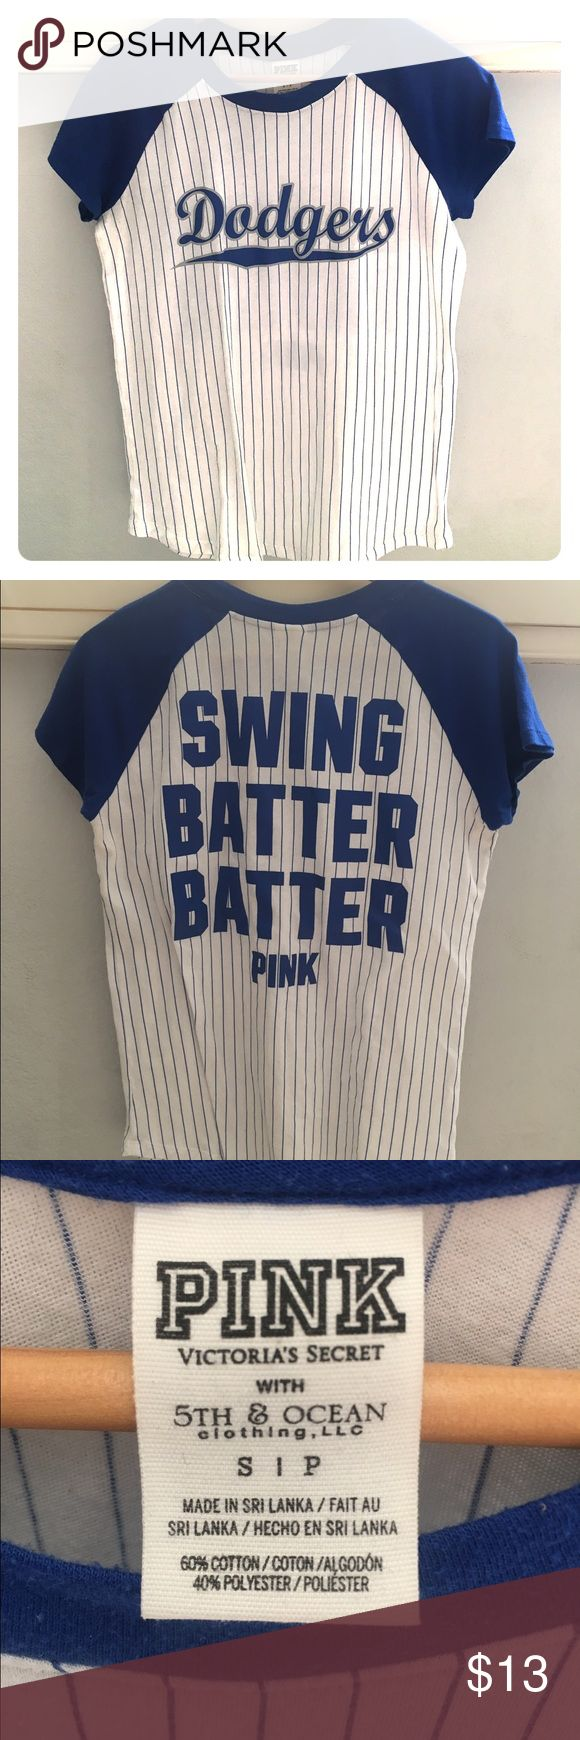 Dodgers Shirt Cute blue and white dodgers baseball t-shirt by PINK PINK Victoria's Secret Tops Tees - Short Sleeve